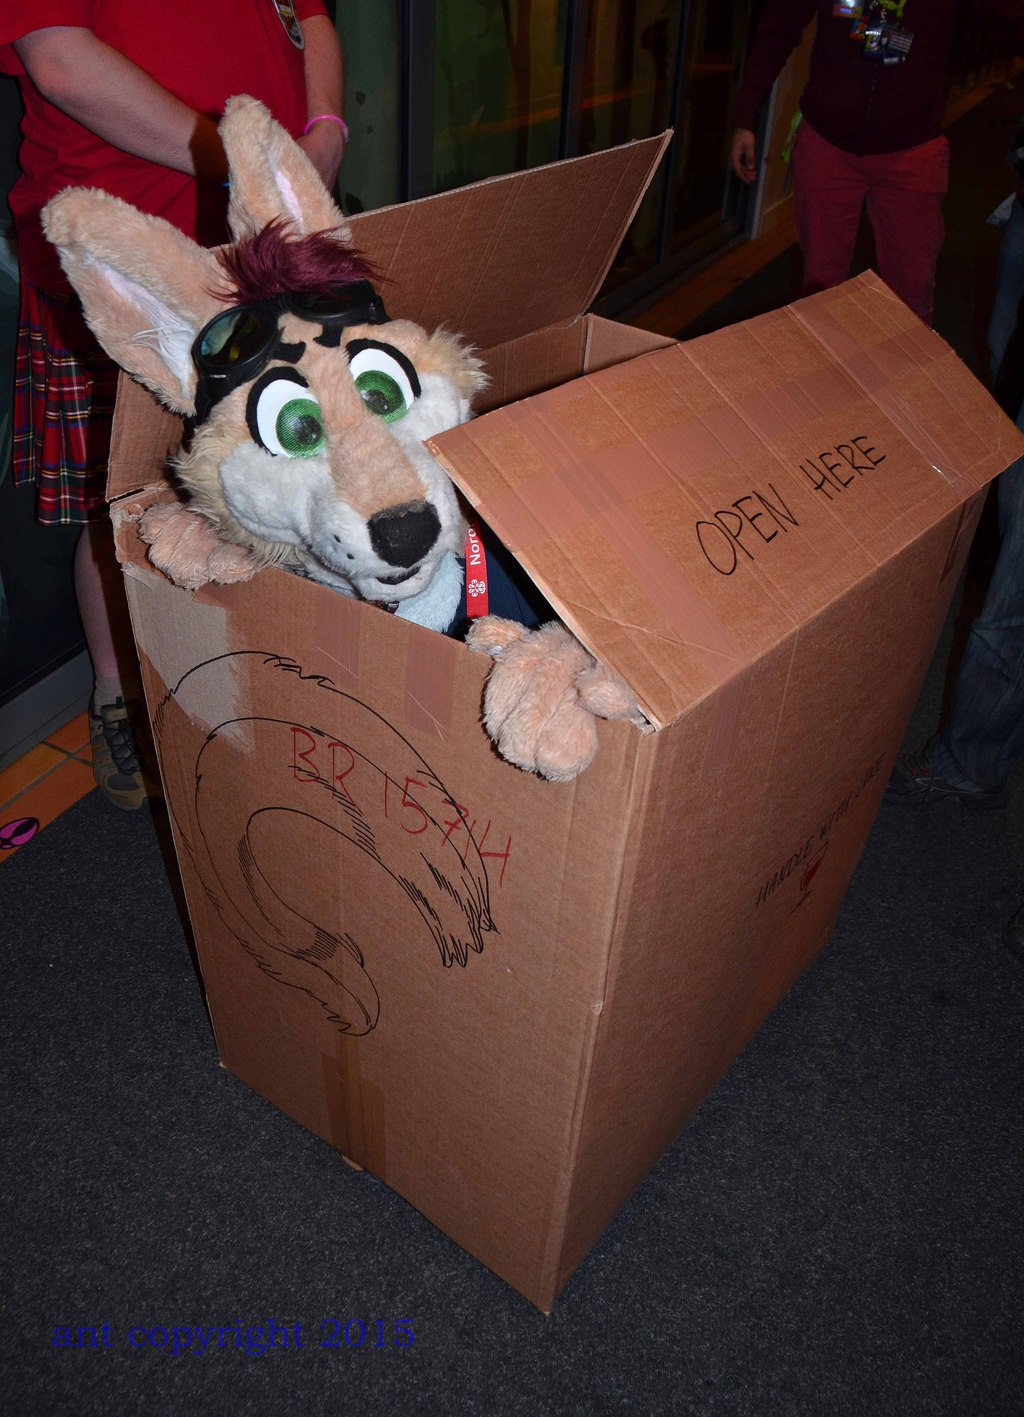 Jake in a box!